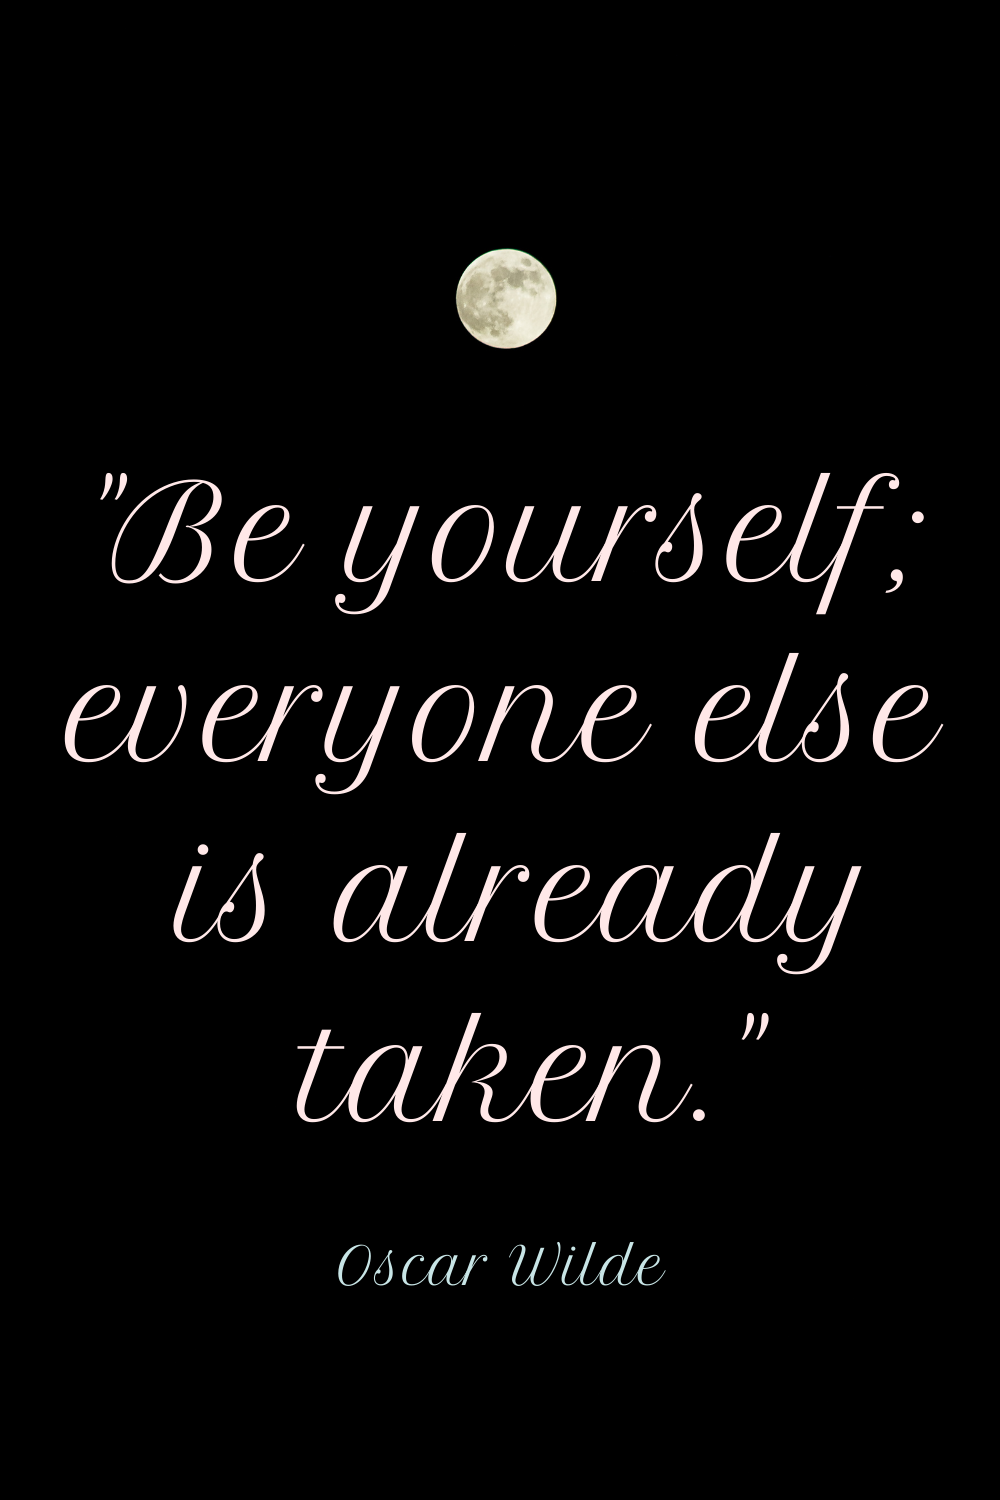 The Oscar Wilde quote Be Yourself; everyone else is already taken written in white on a black background with a moon centred above it.